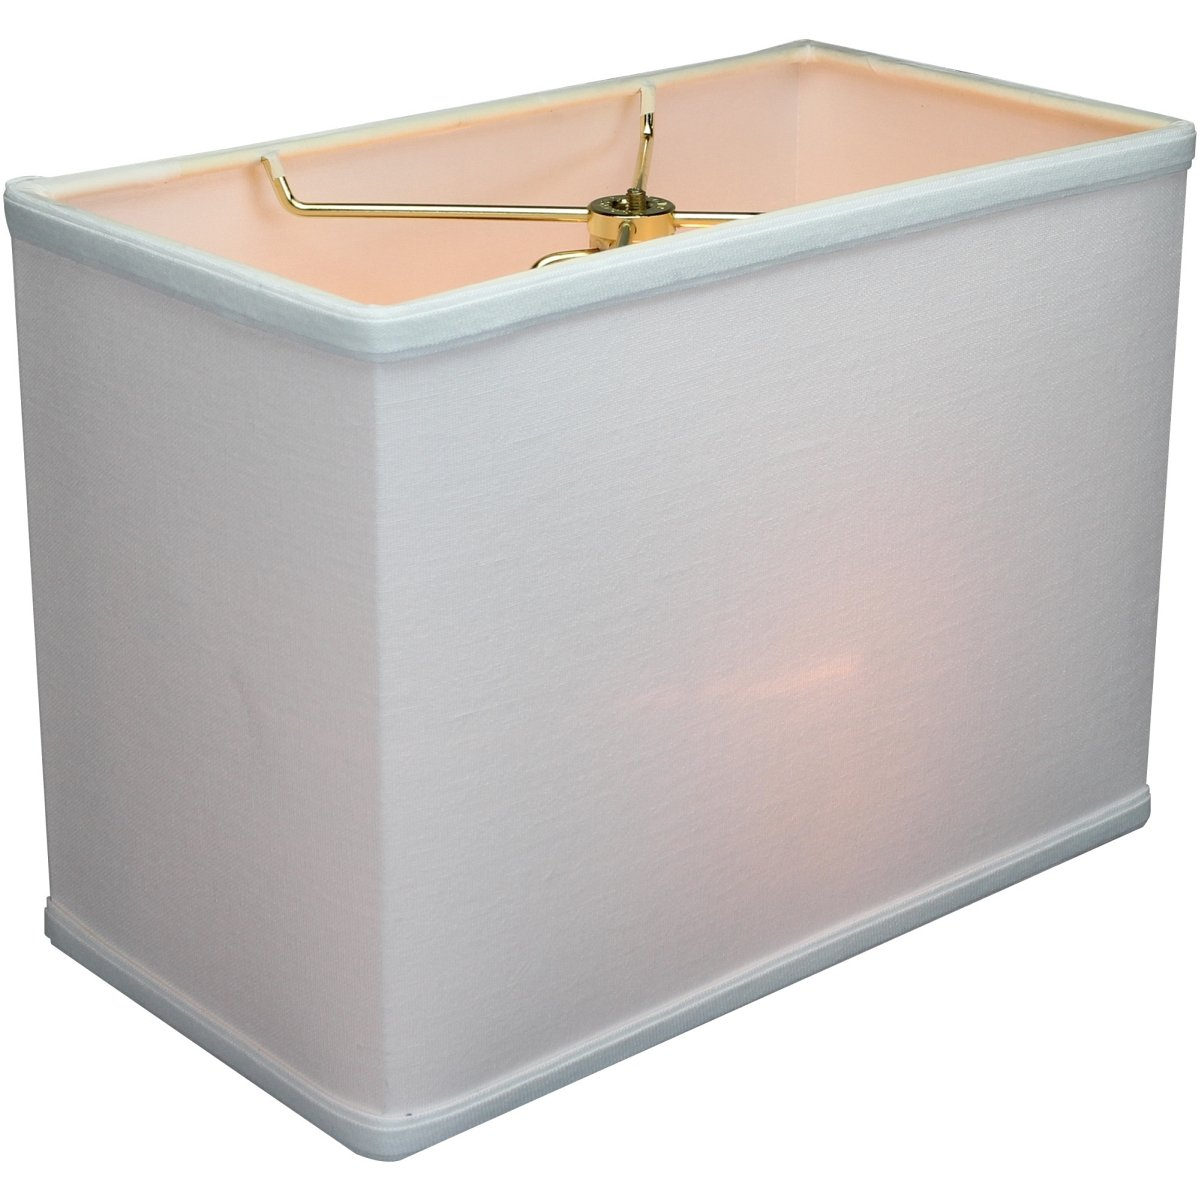 (6x12)x(6x12)x9 Rectangular Drum Lampshade White with Brass Spider fitter By Home Concept - Perfect for table and Desk lamps - Medium, White 120609RDWH